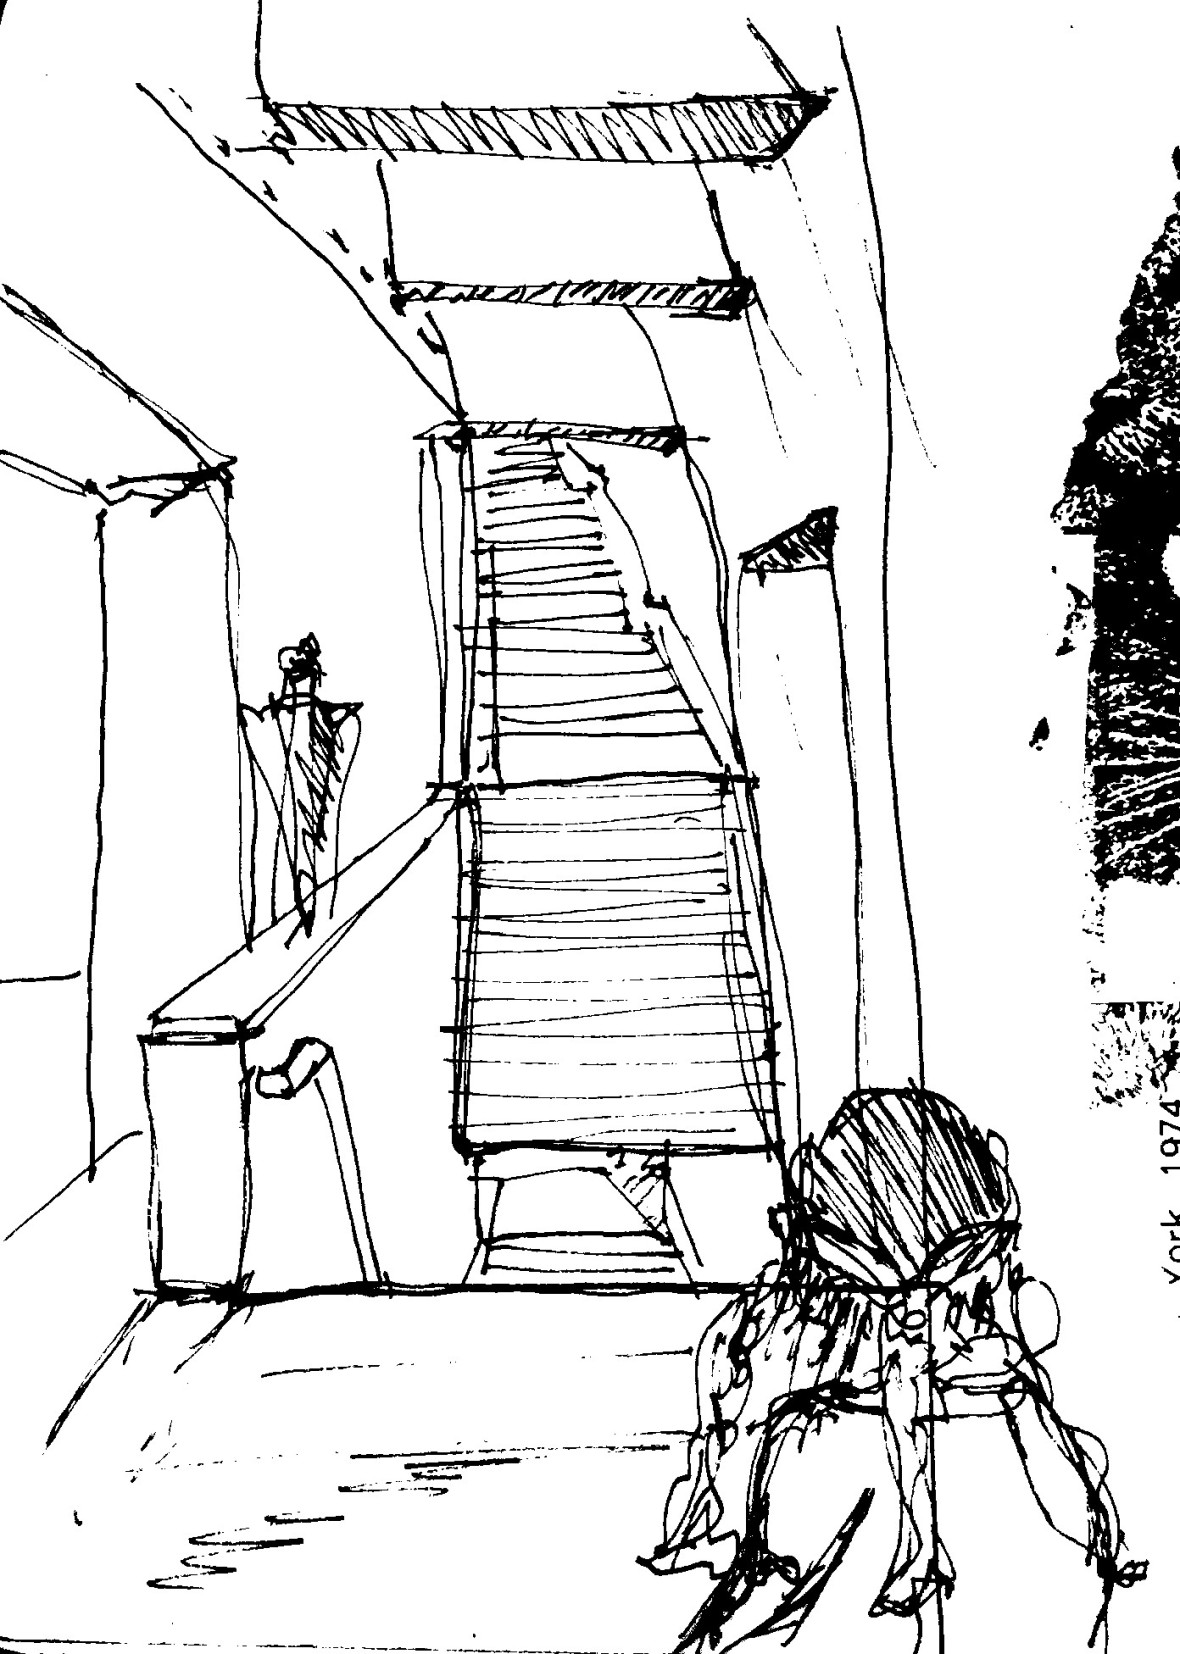 day-3_moma-sketch-02